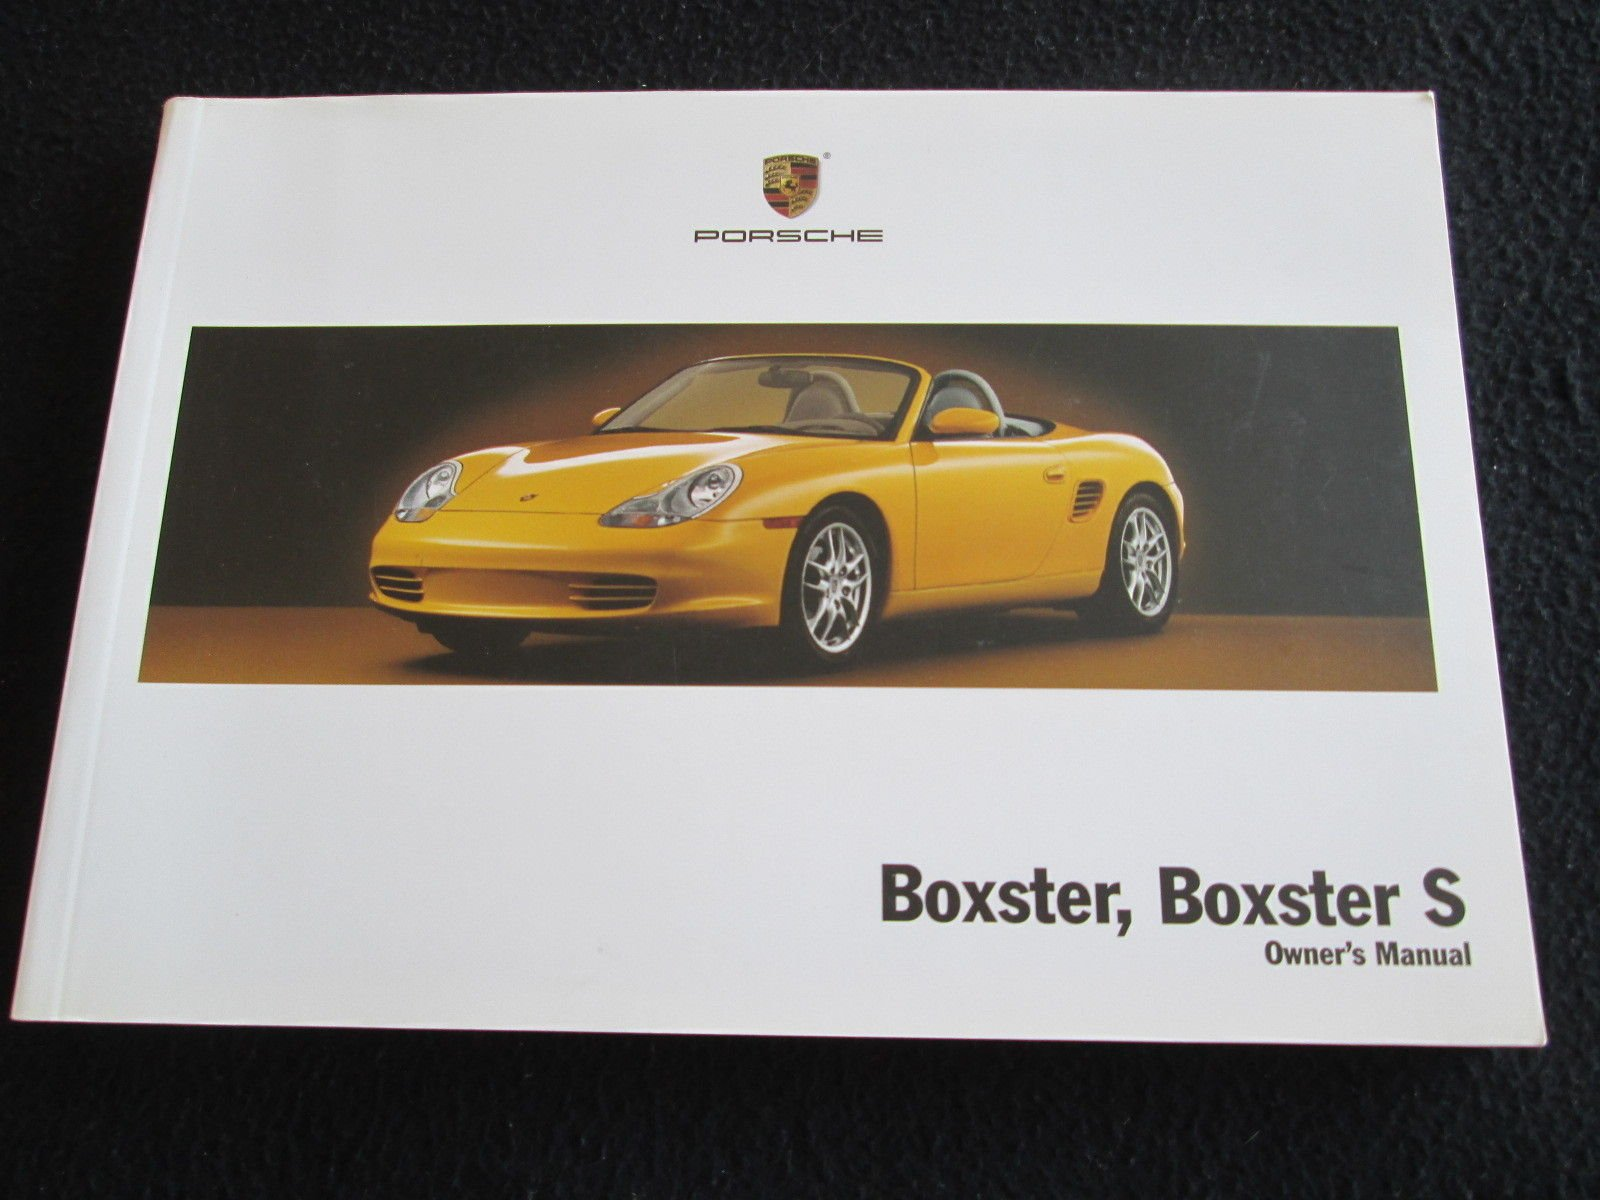 2003 porsche boxster boxster s owners manual amazon com books rh amazon com 1997 porsche boxster repair manual 1997 Porsche Boxster Review